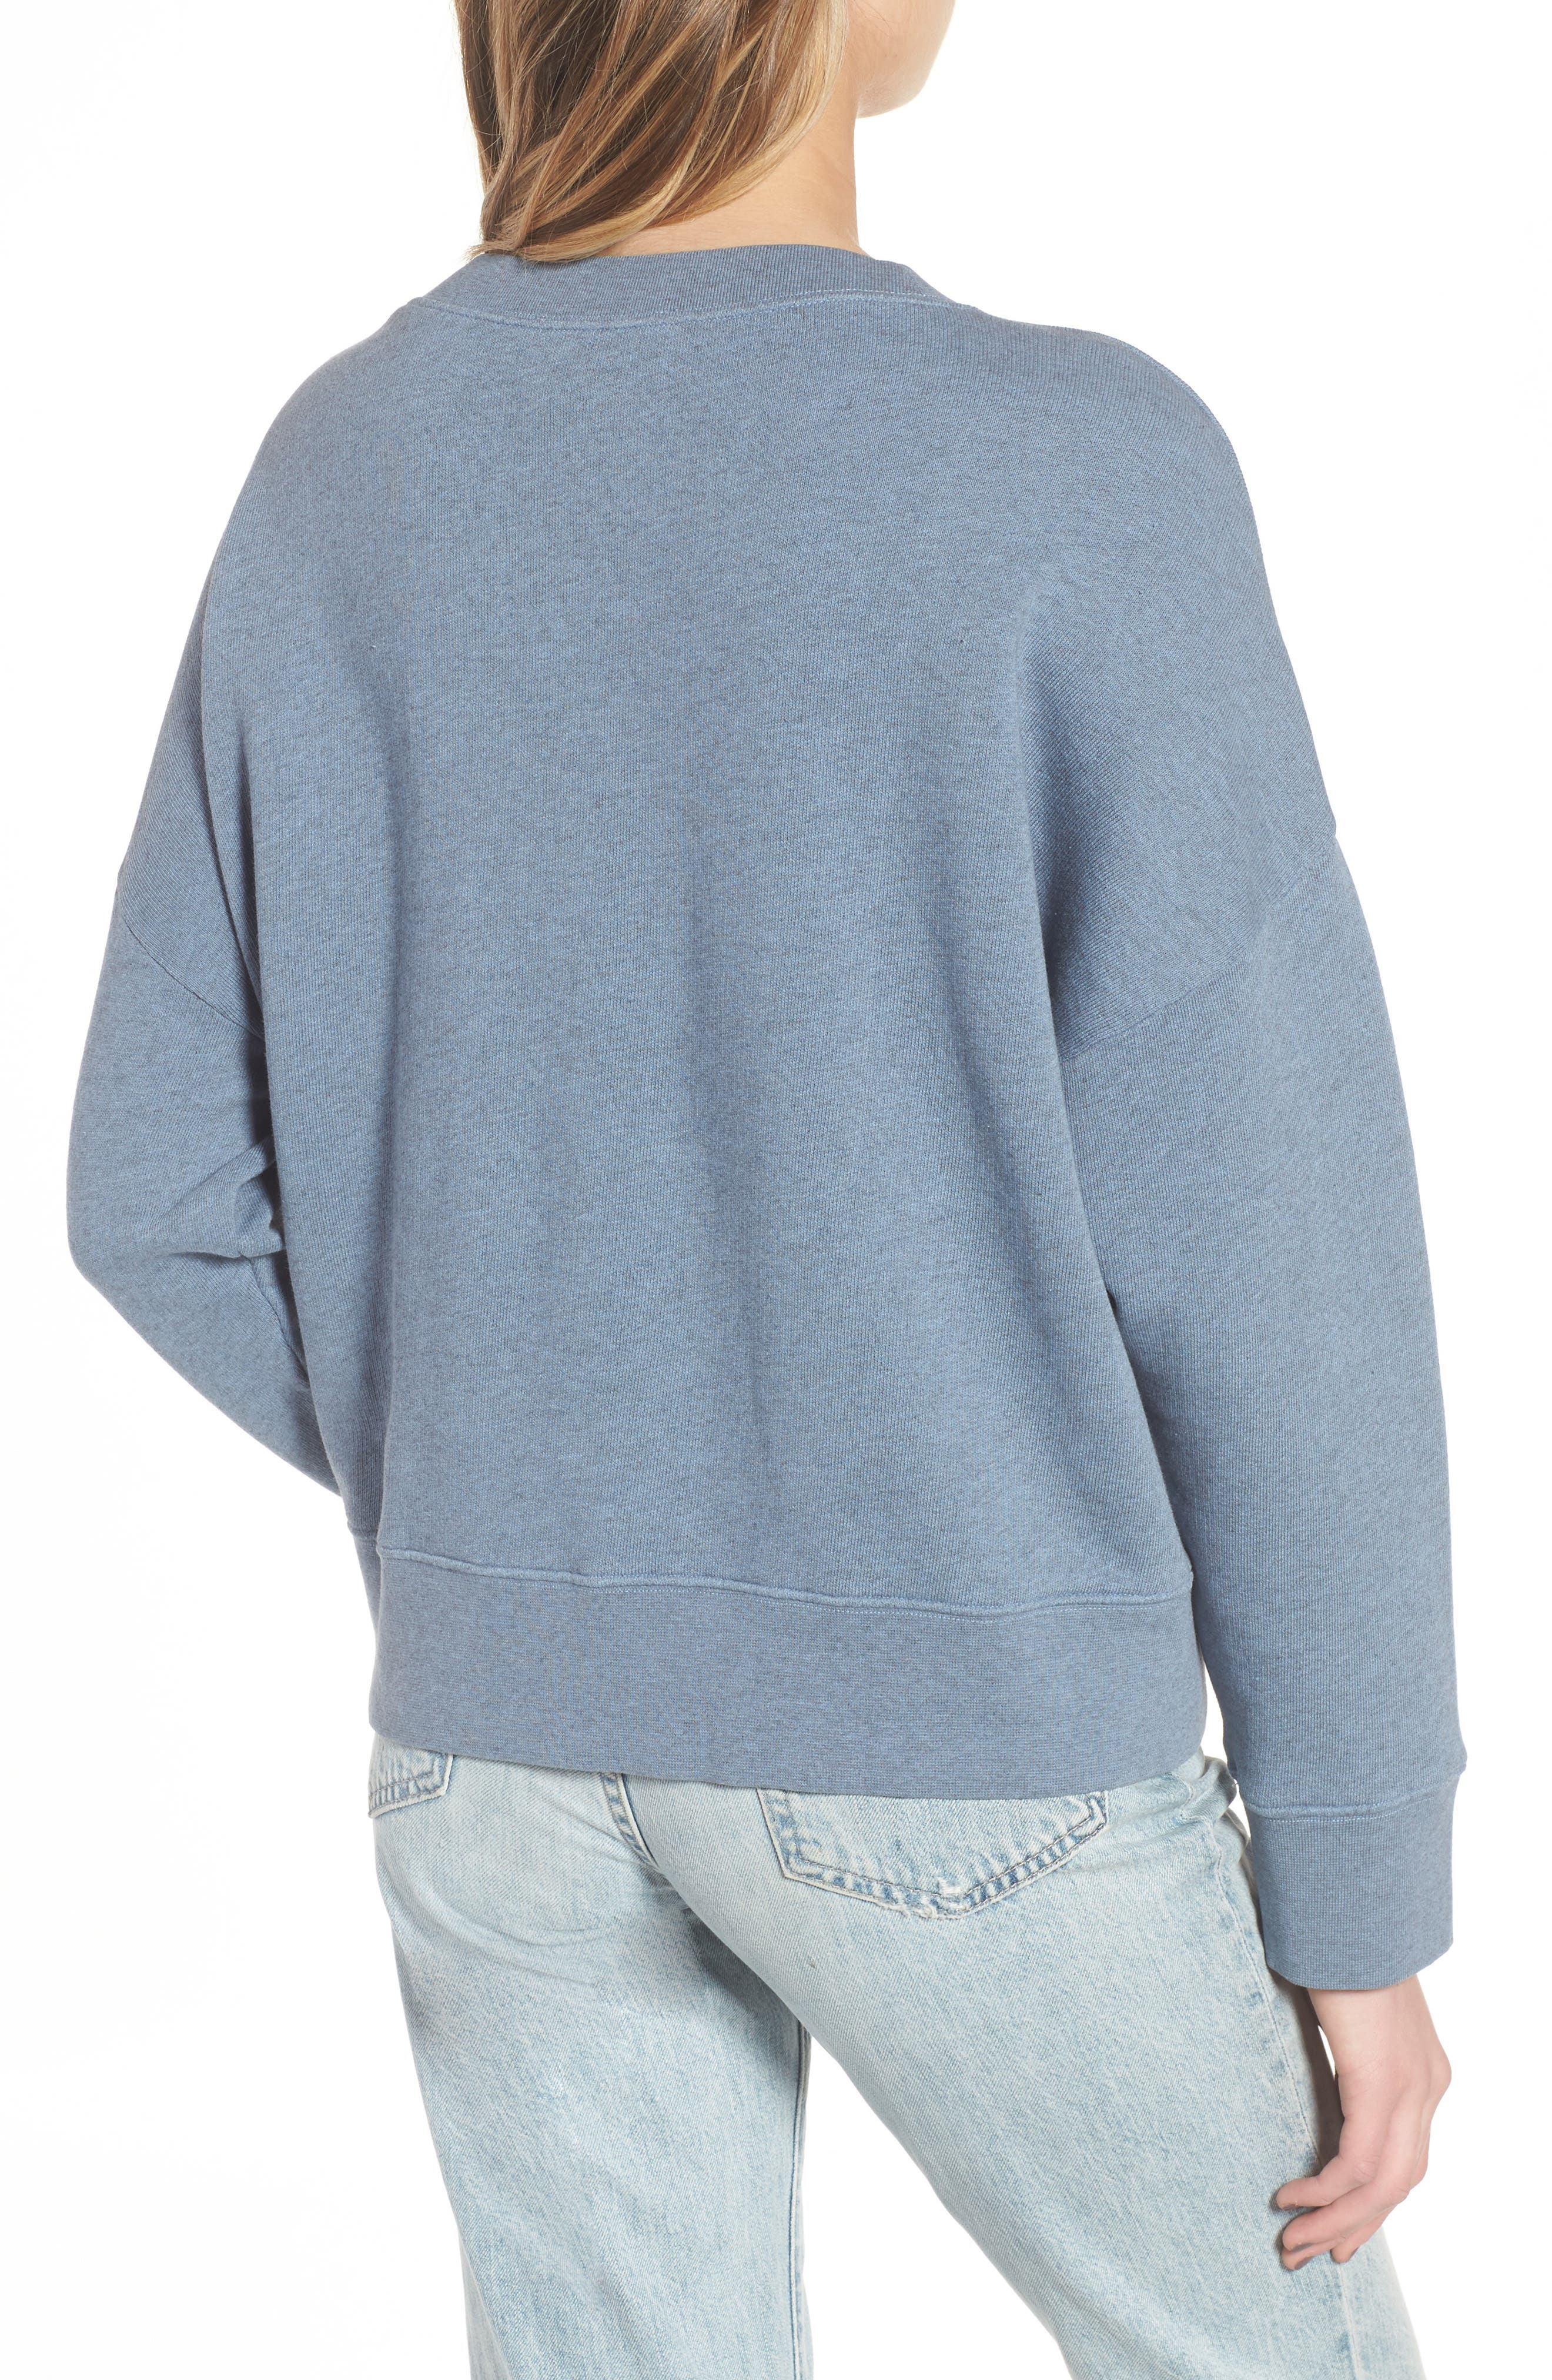 Kyoto Sweatshirt,                             Alternate thumbnail 2, color,                             Blue